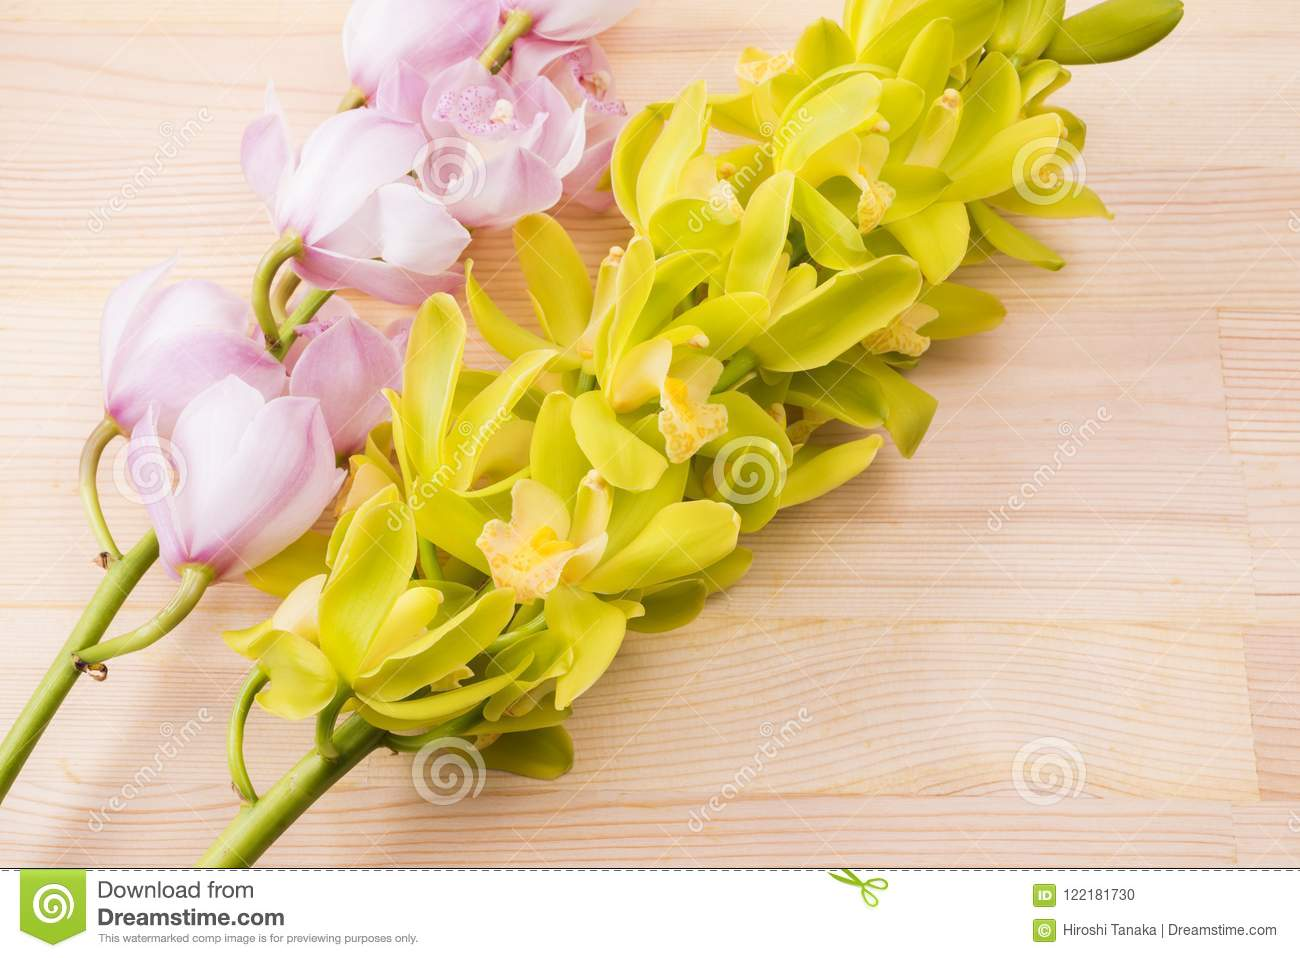 Two colors of orchid flowers